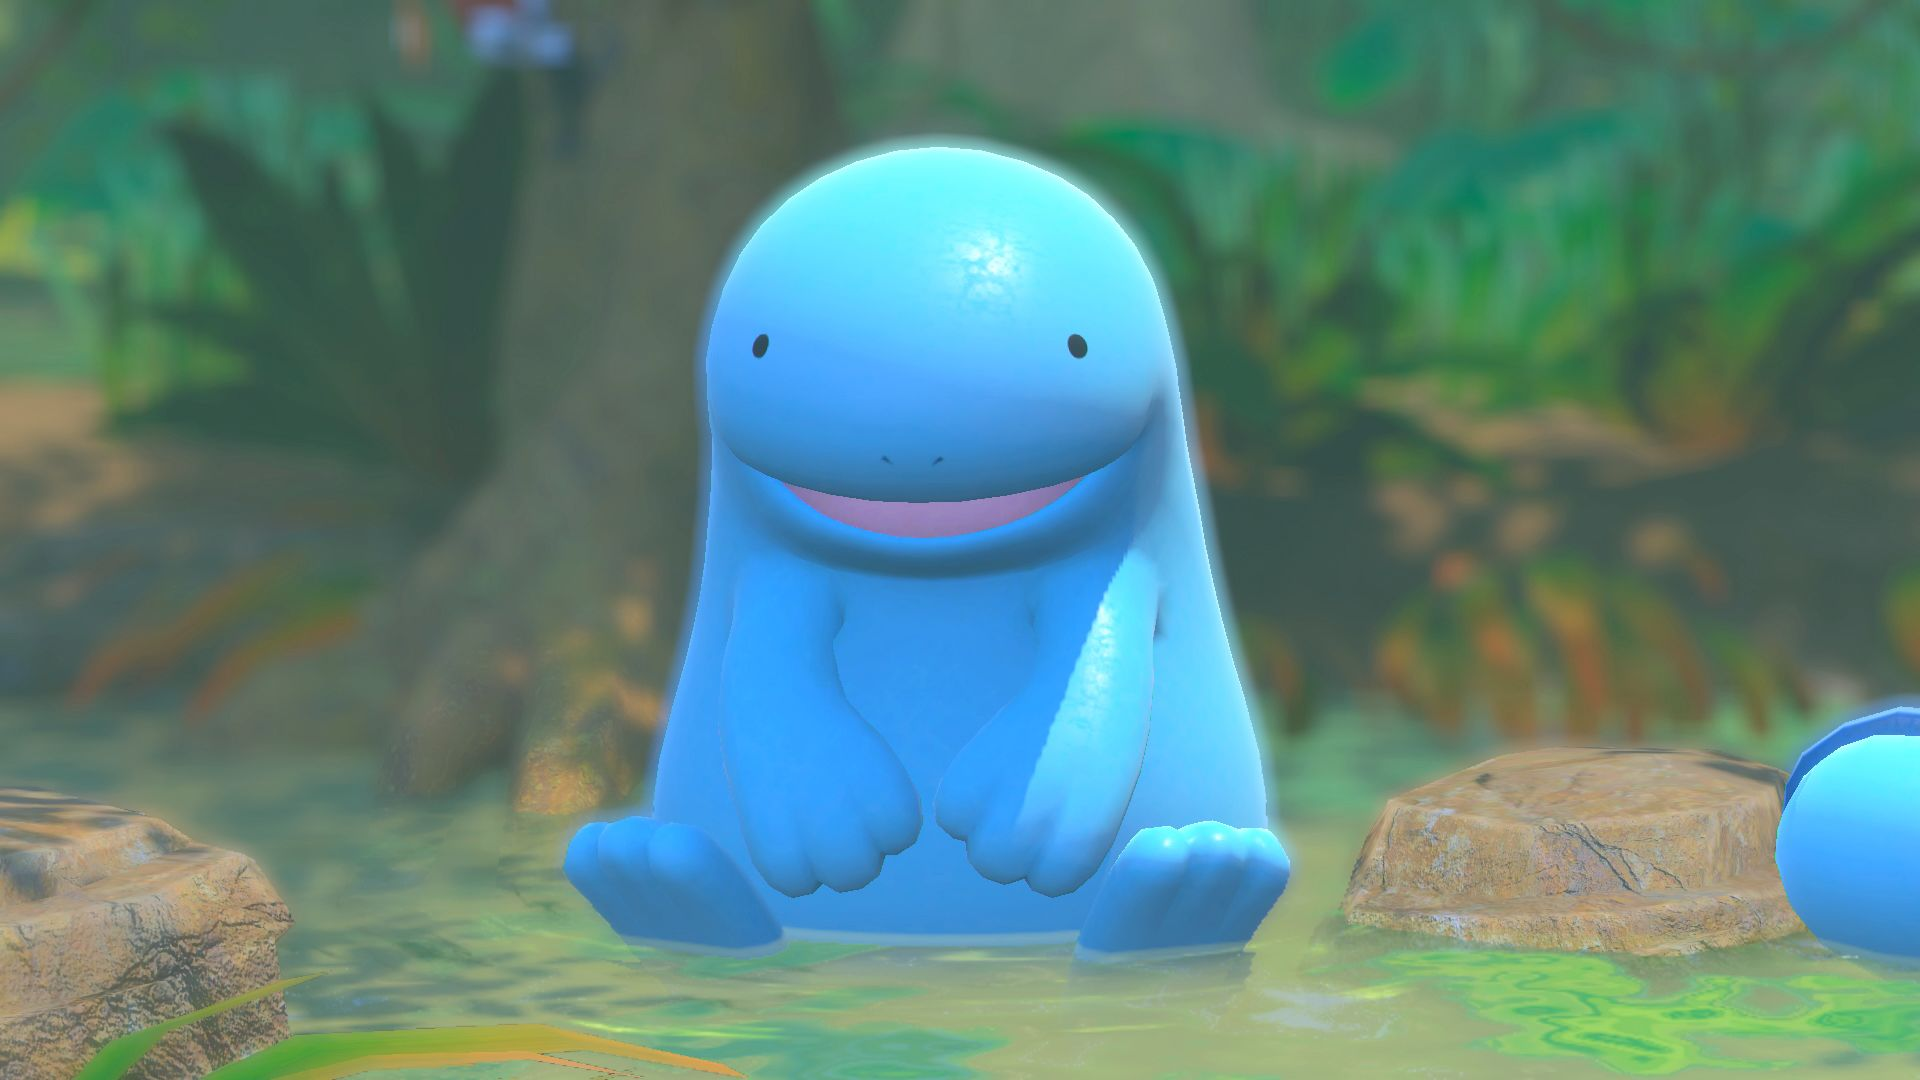 A Wooper, being a quintessential Wooper, in New Pokemon Snap.